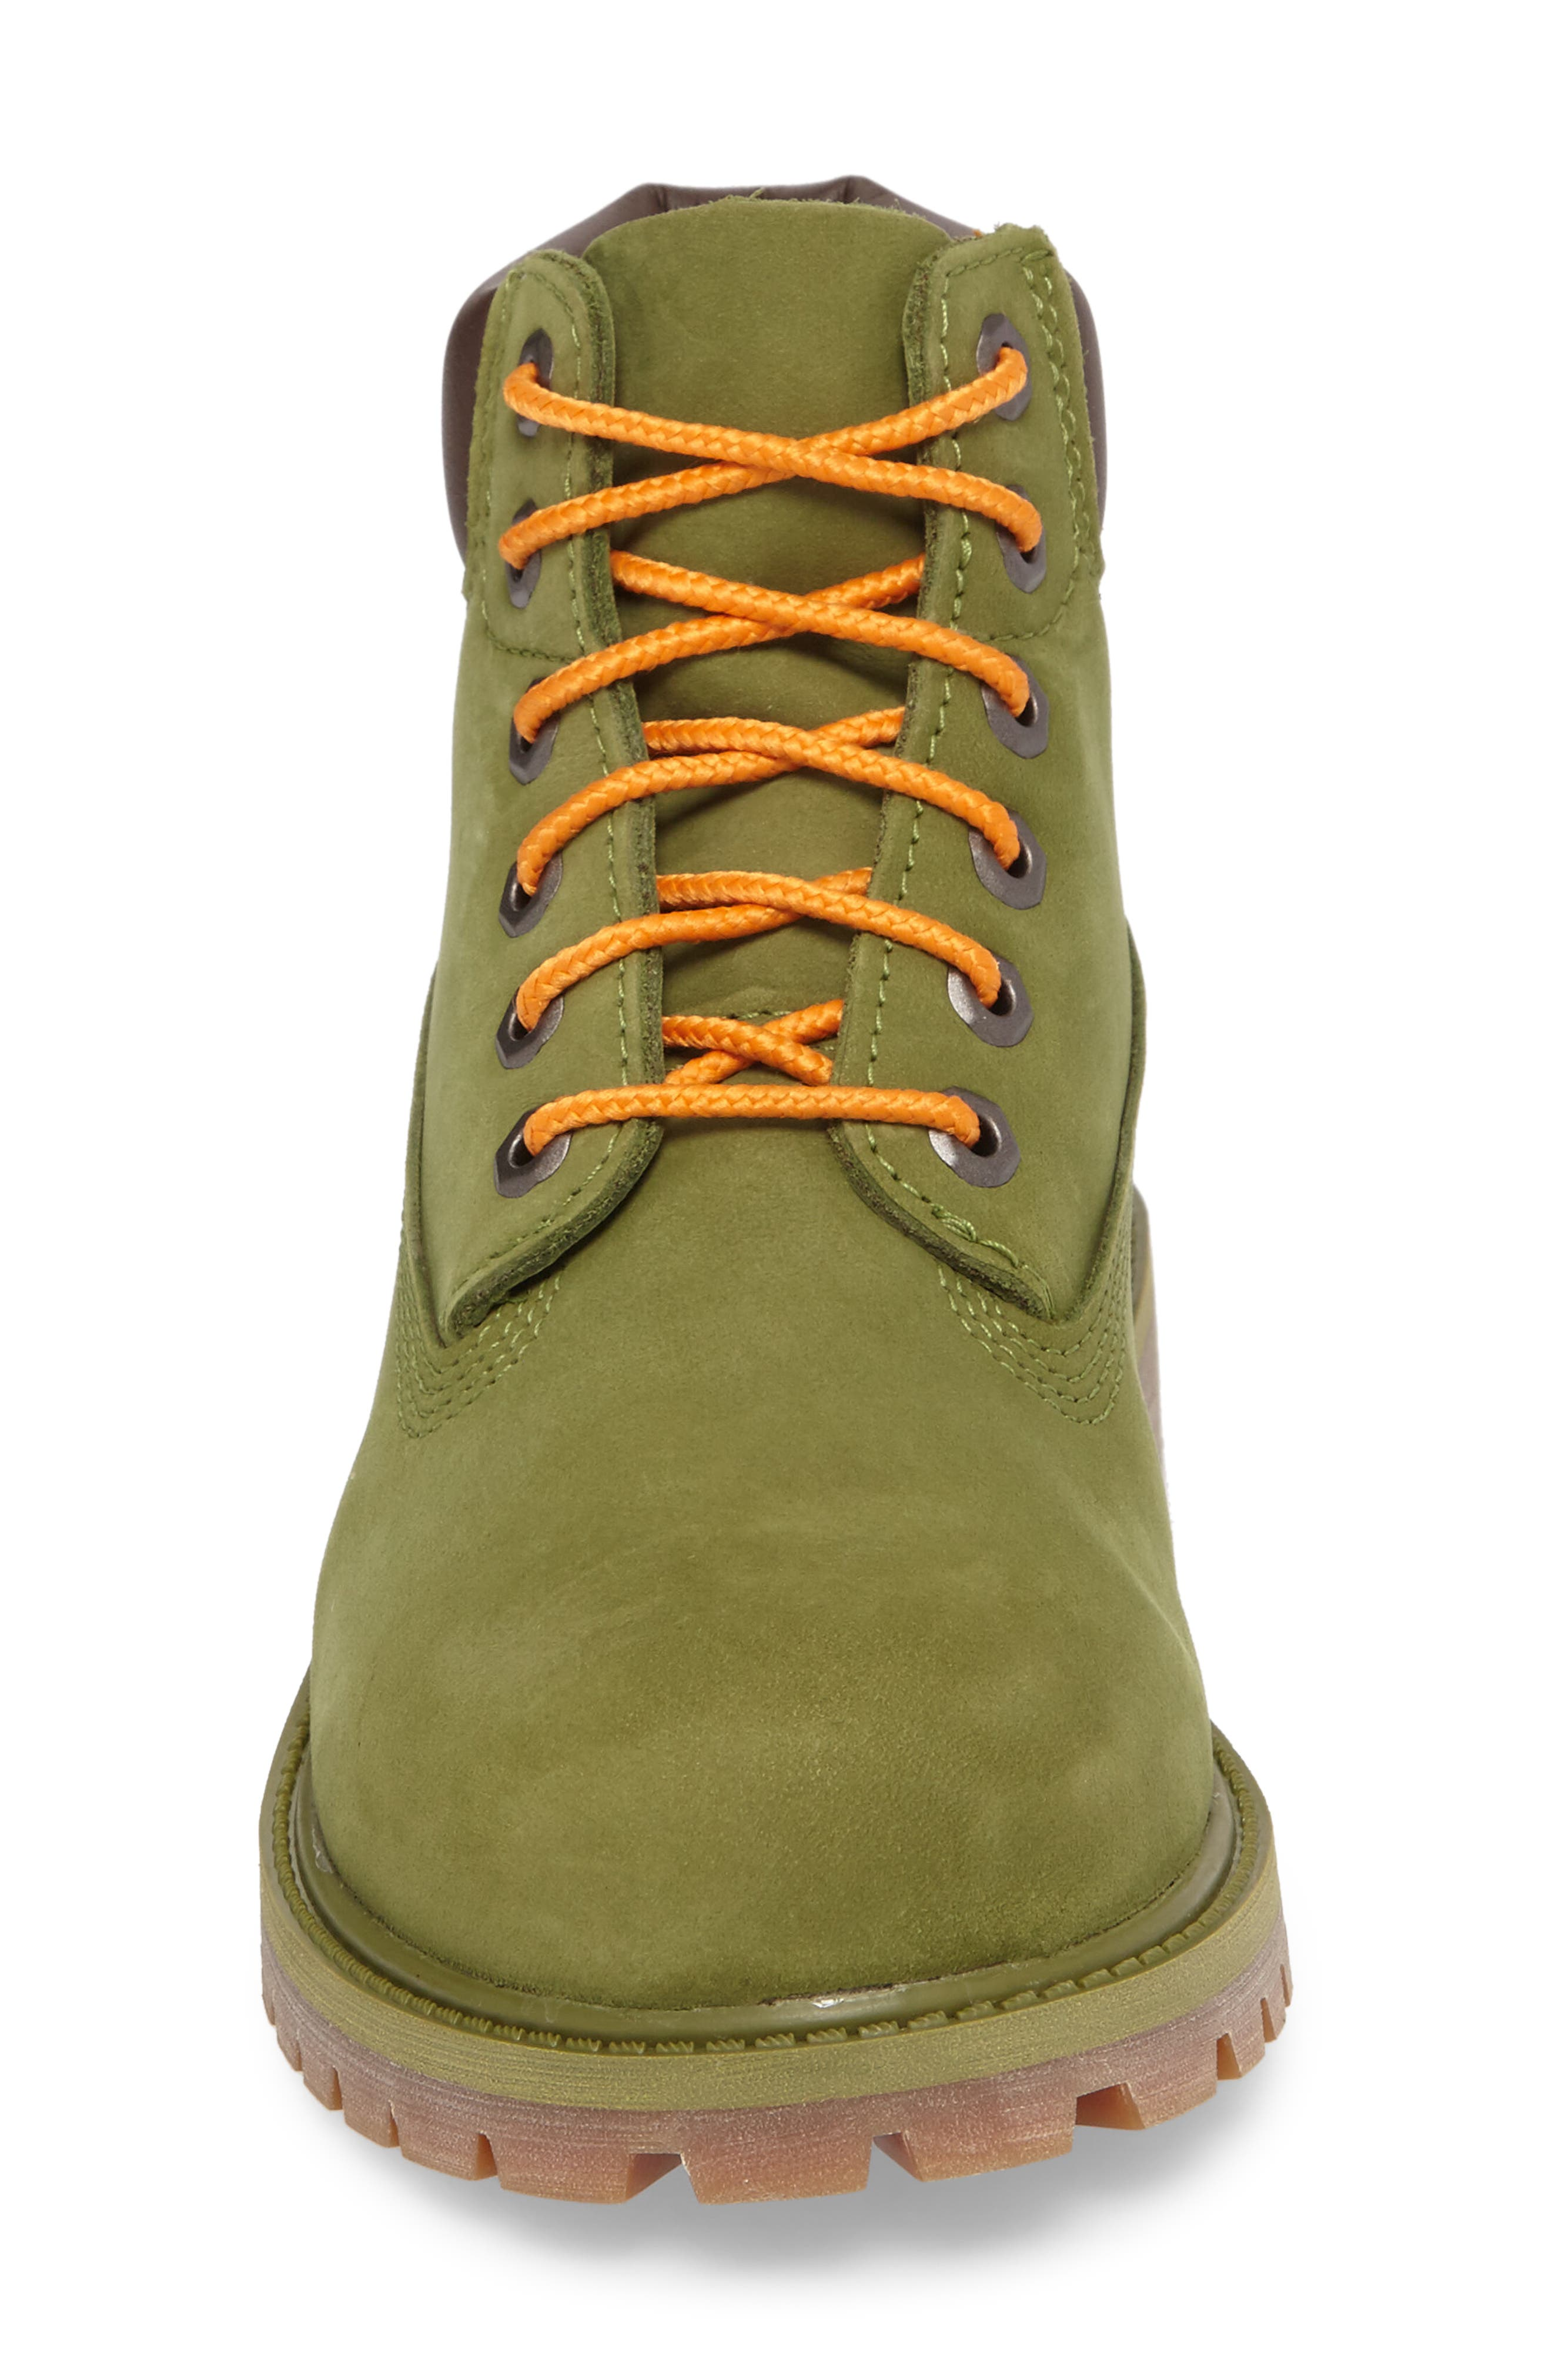 Alternate Image 4  - Timberland 6-Inch Premium Waterproof Boot (Walker, Toddler, Little Kid & Big Kid)